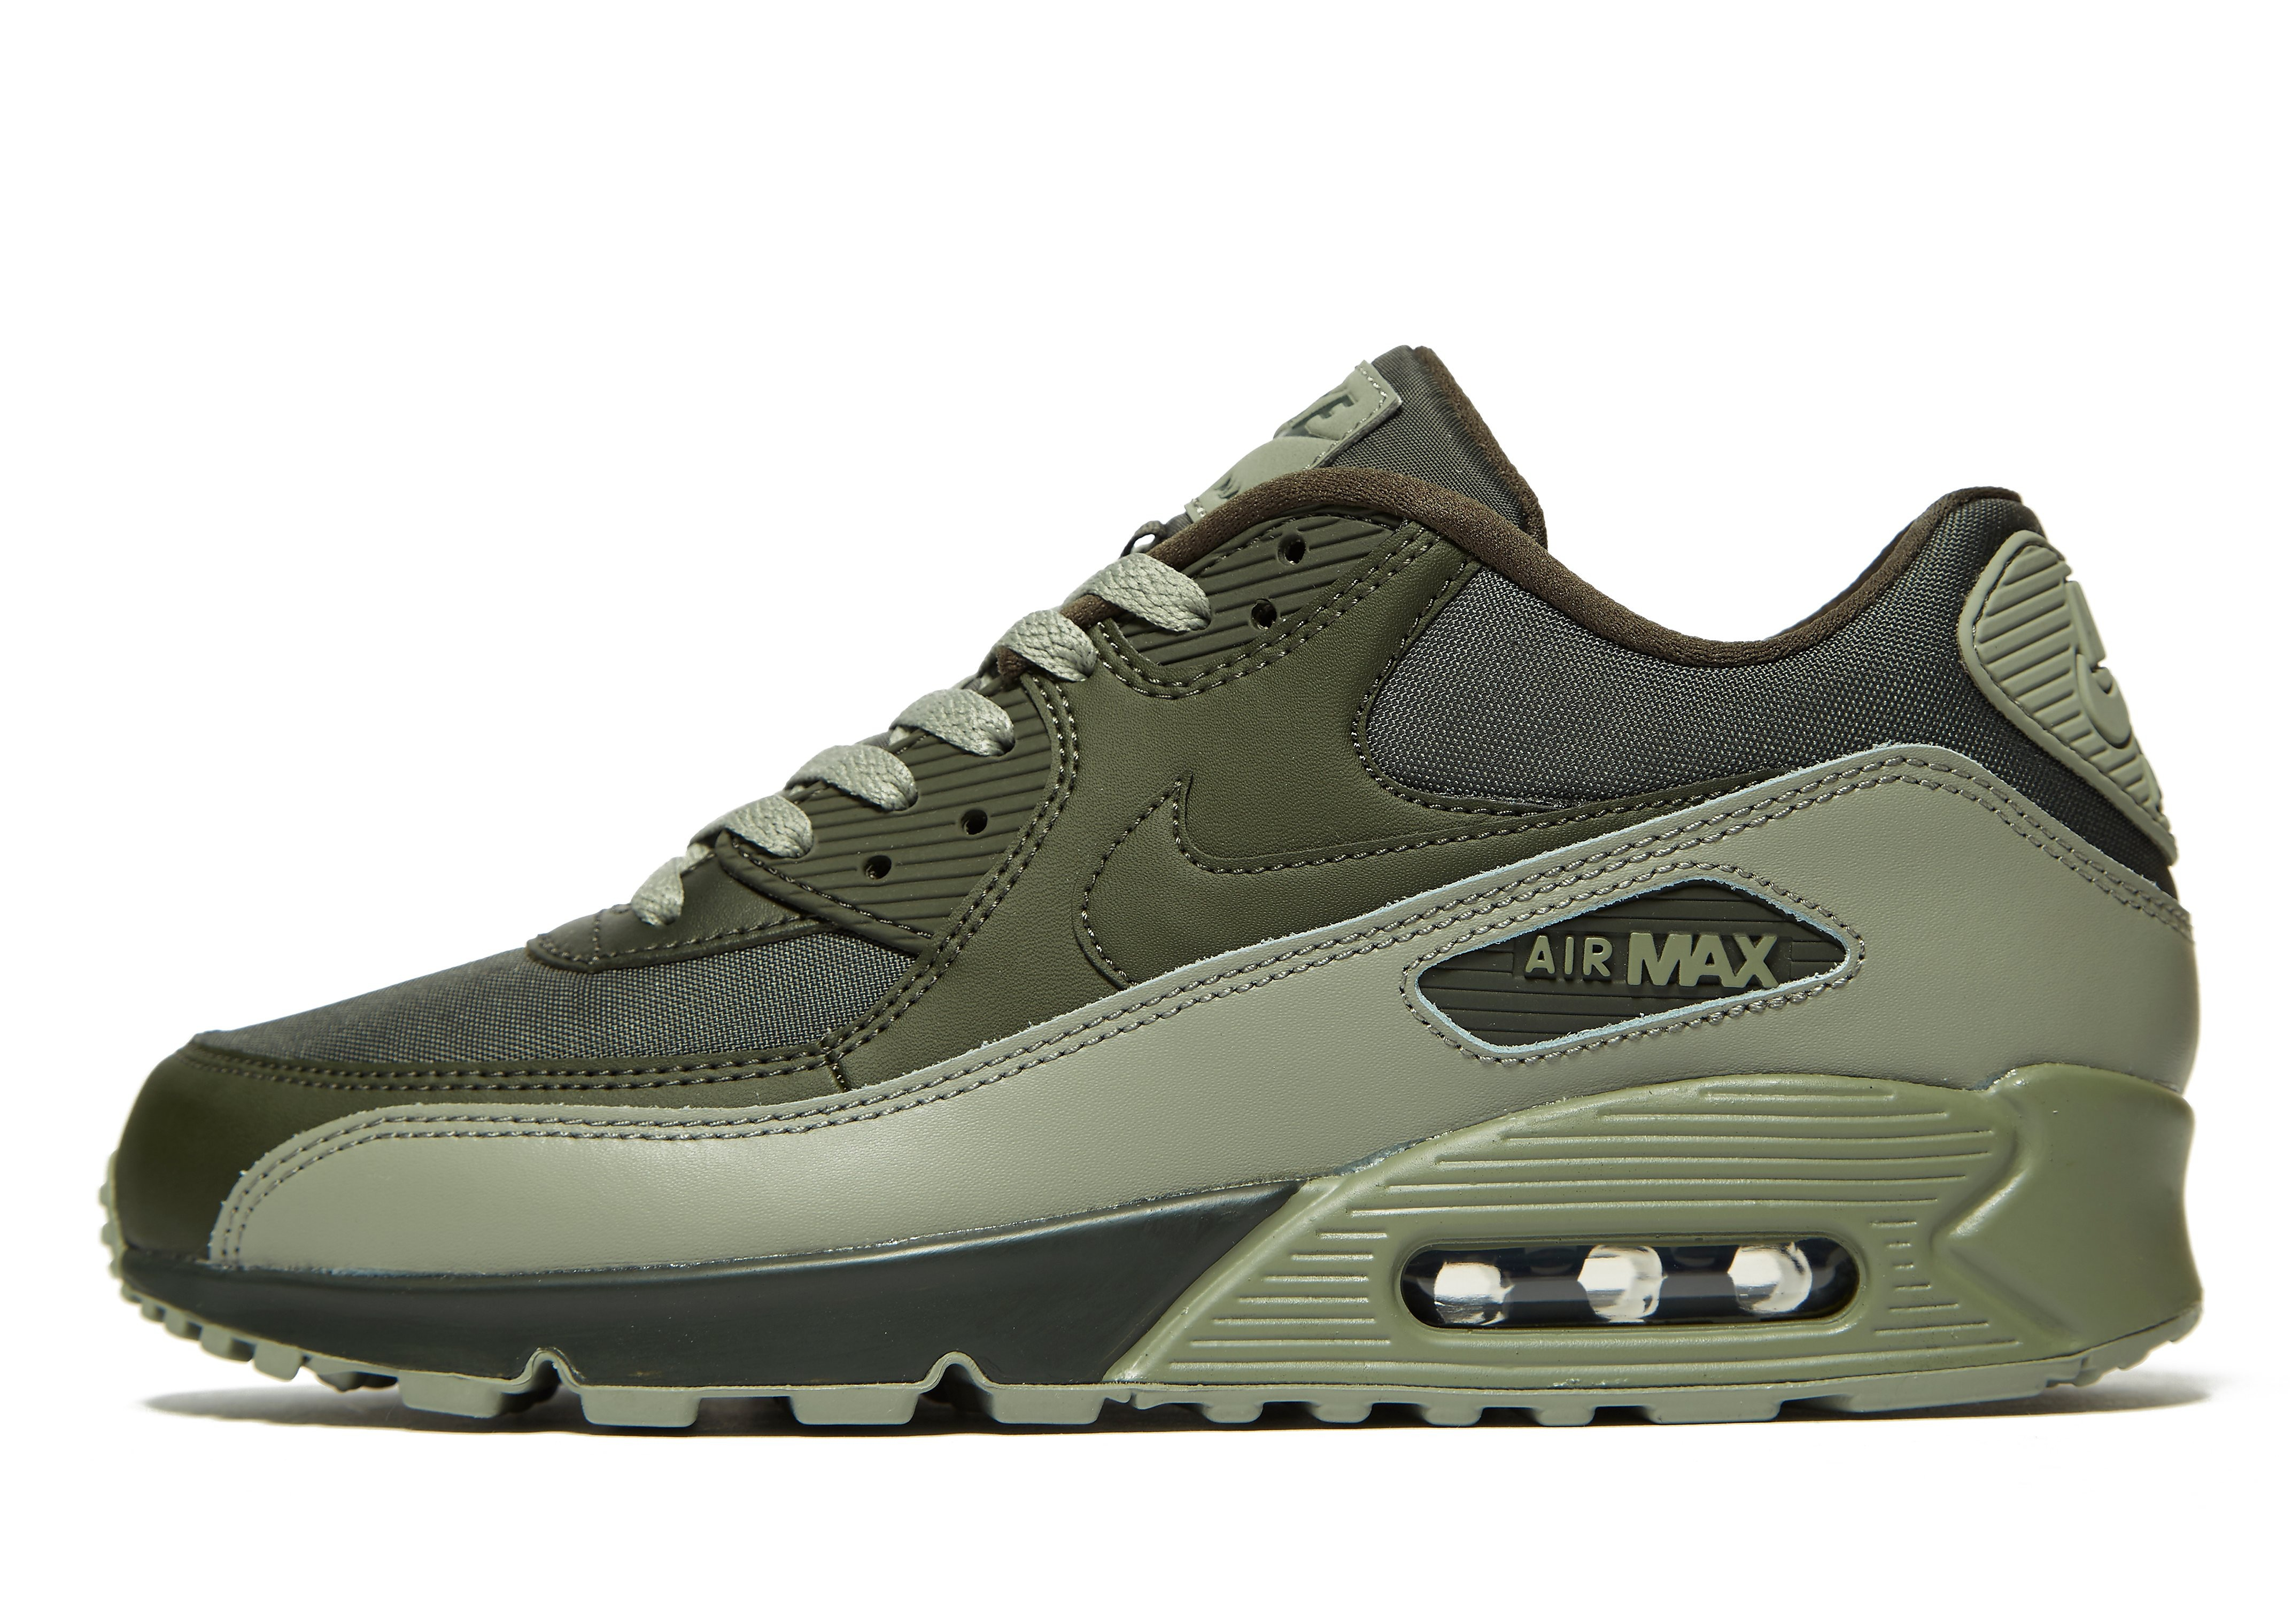 Nike Air Max 90 Sequoia Stucco